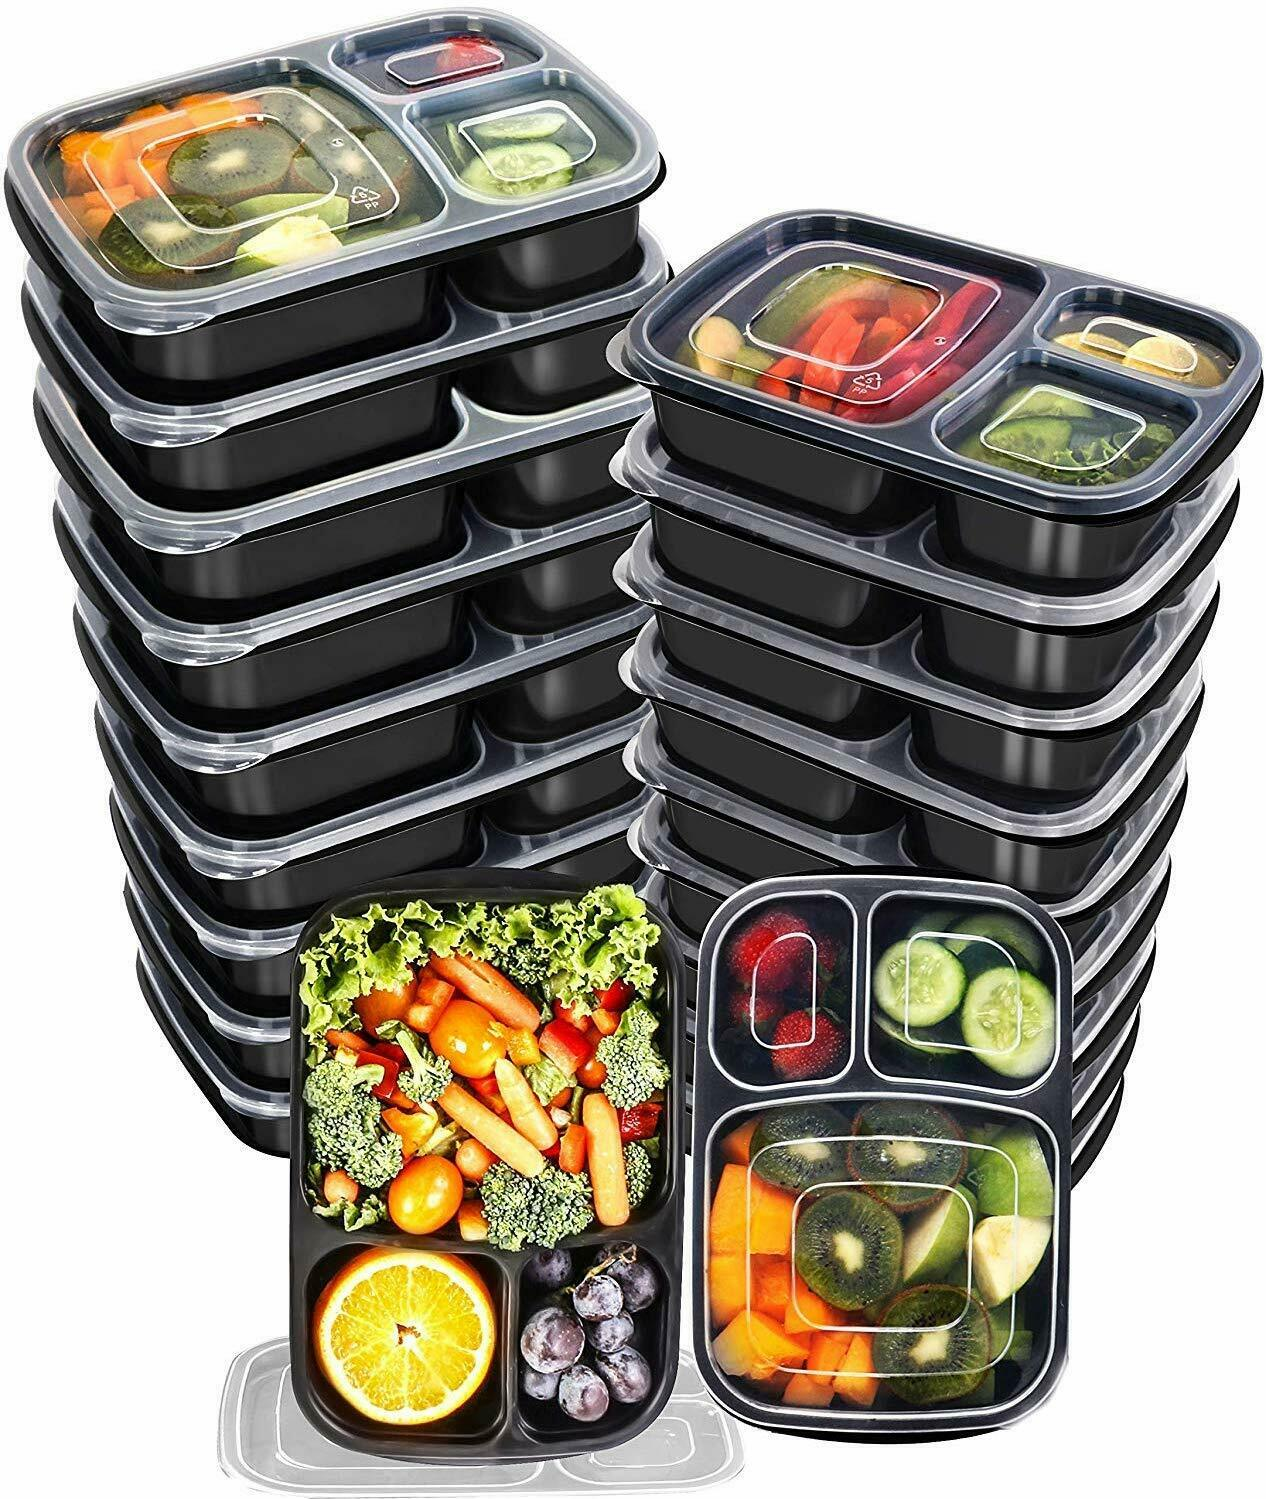 20 Piece Meal Prep Containers  3 Compartment with Lid Utopia Kitchen